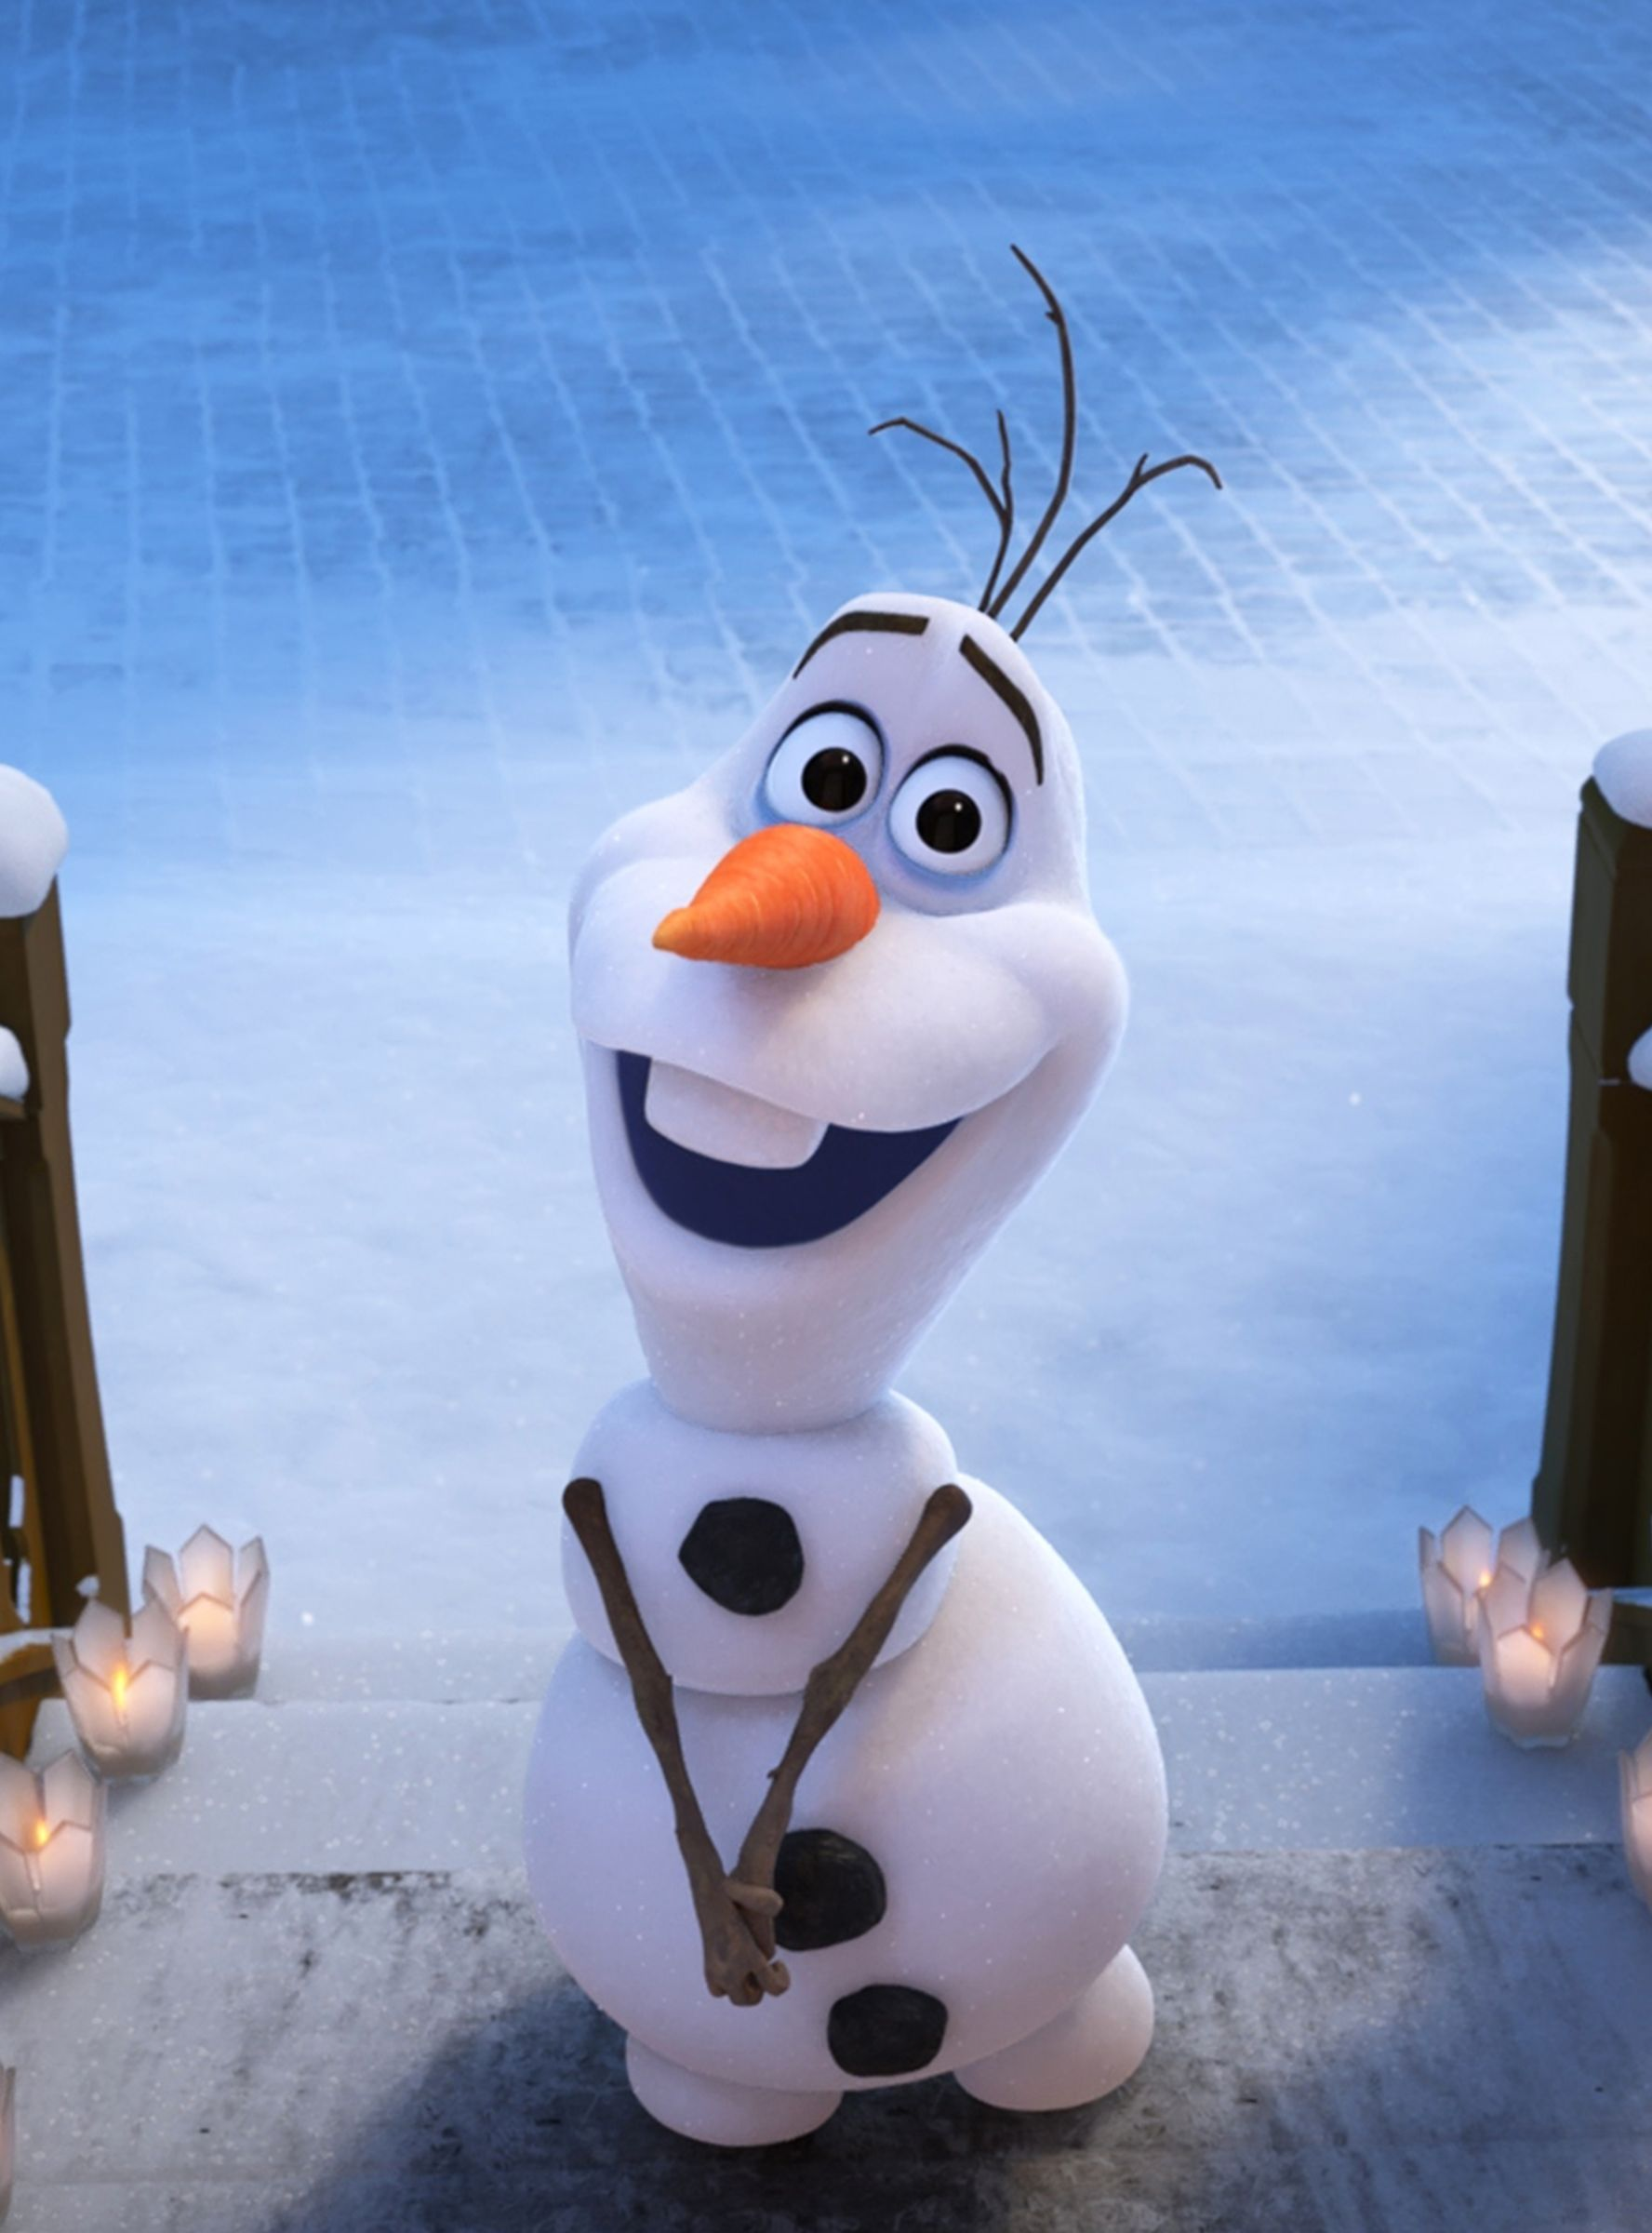 Cute Olaf Wallpapers Moviegoers Love Quot Coco Quot But Not The Mini Quot Frozen Quot Movie